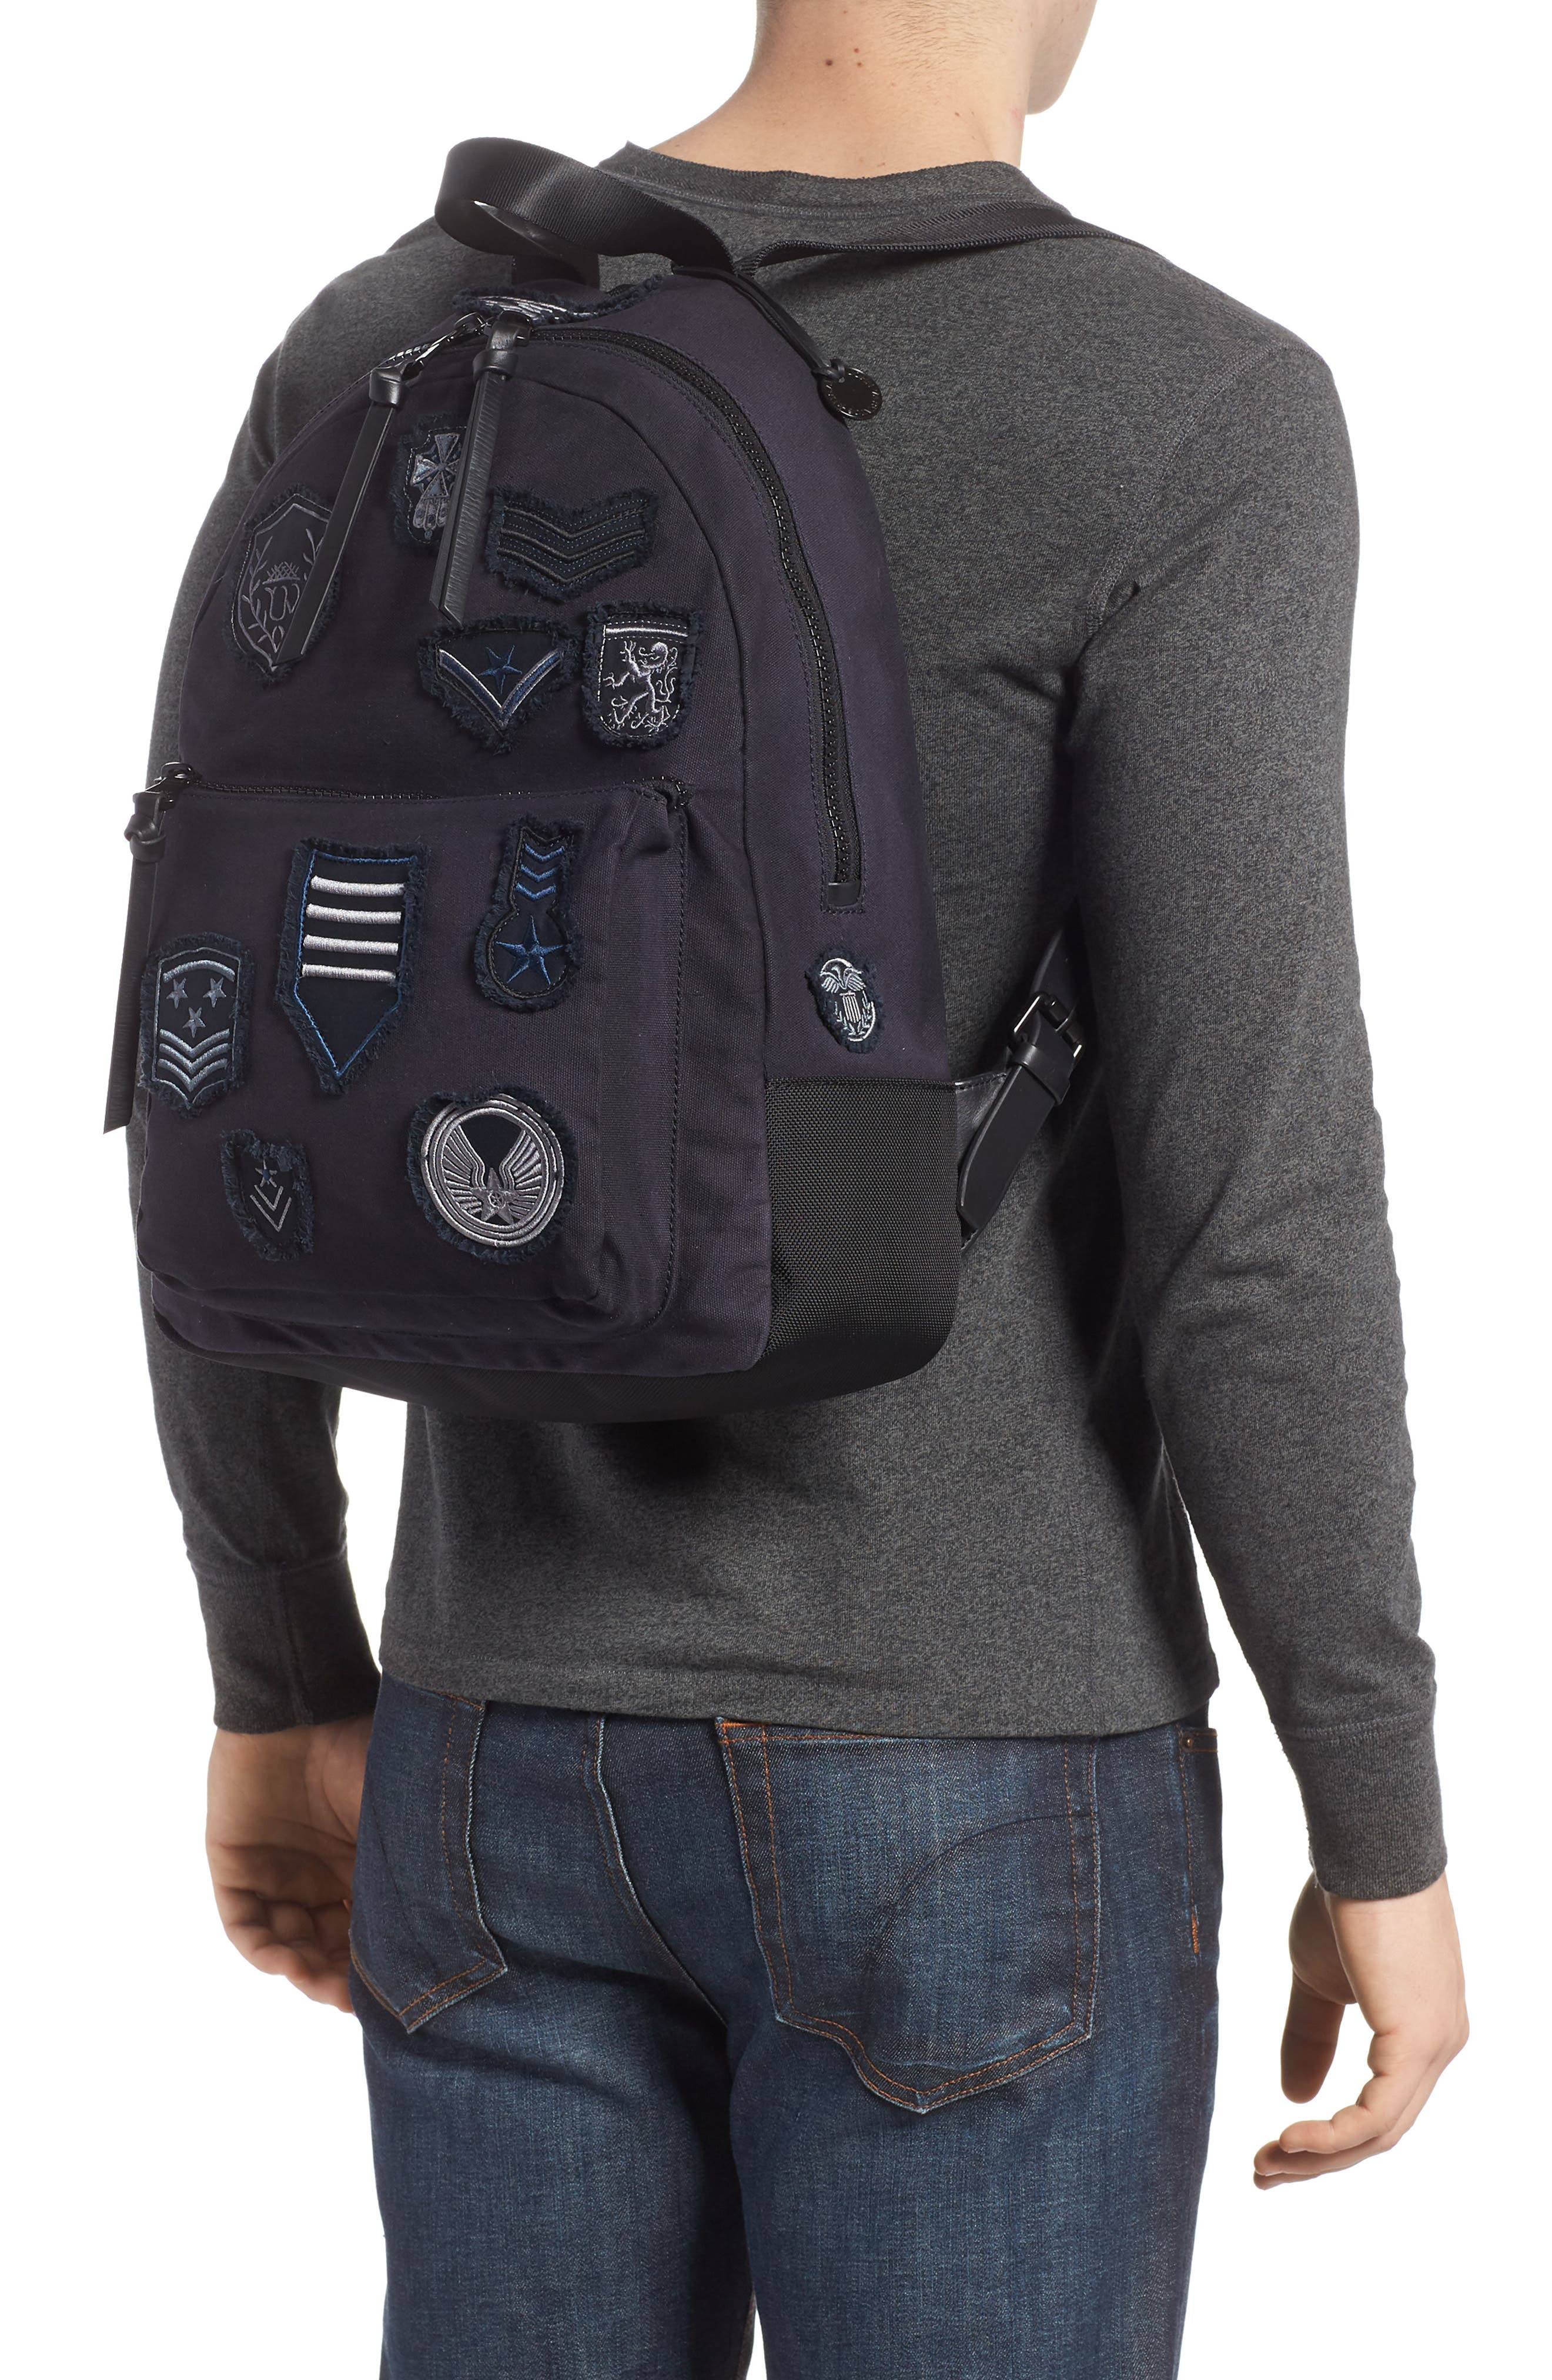 Gibson Patch Backpack,                             Alternate thumbnail 2, color,                             Midnight